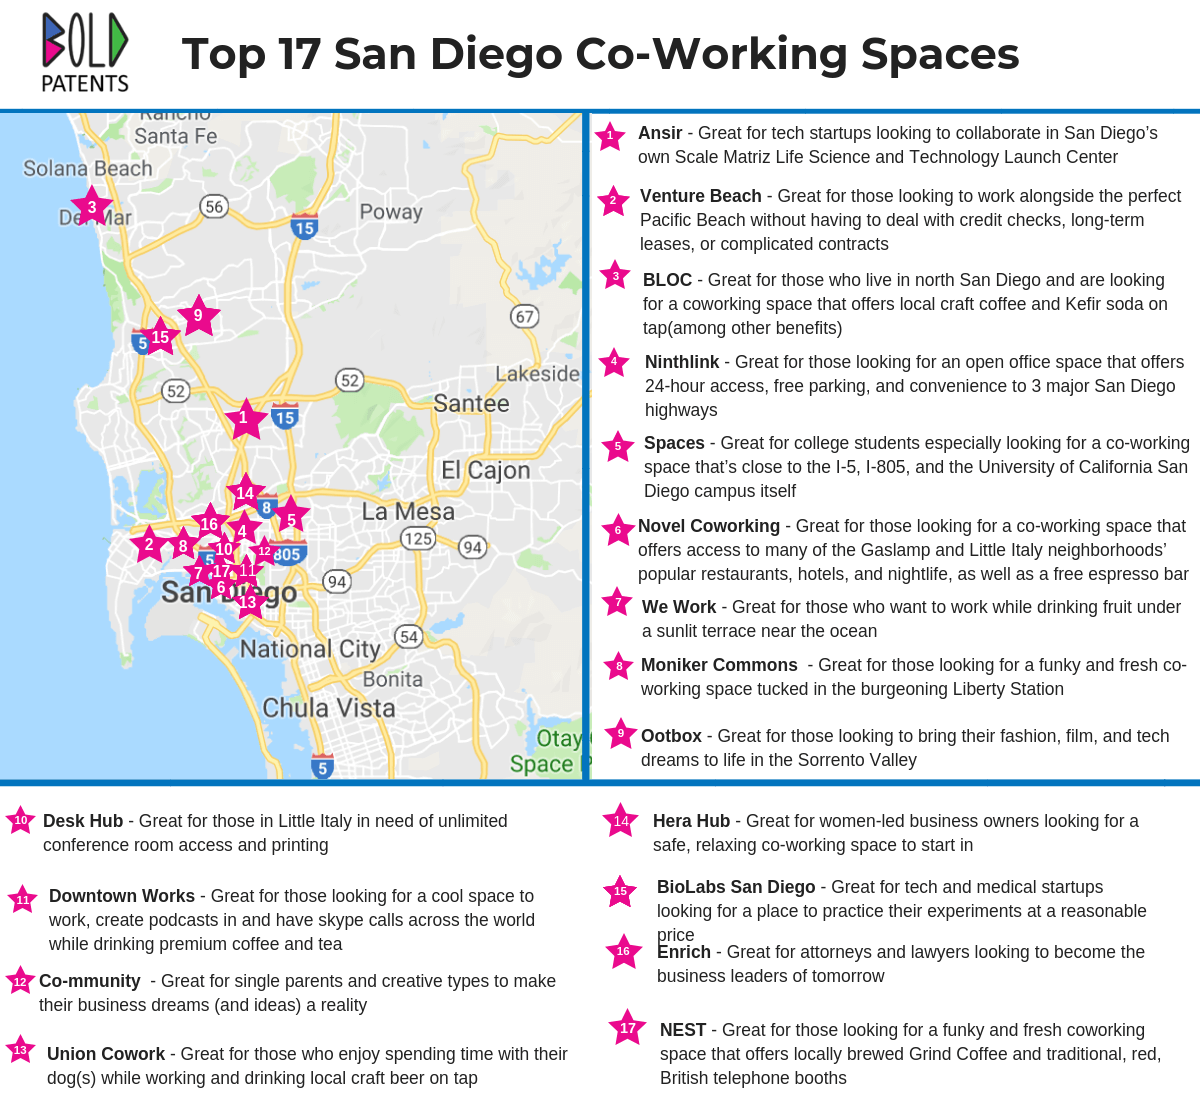 San Diego Co-Working Space Map